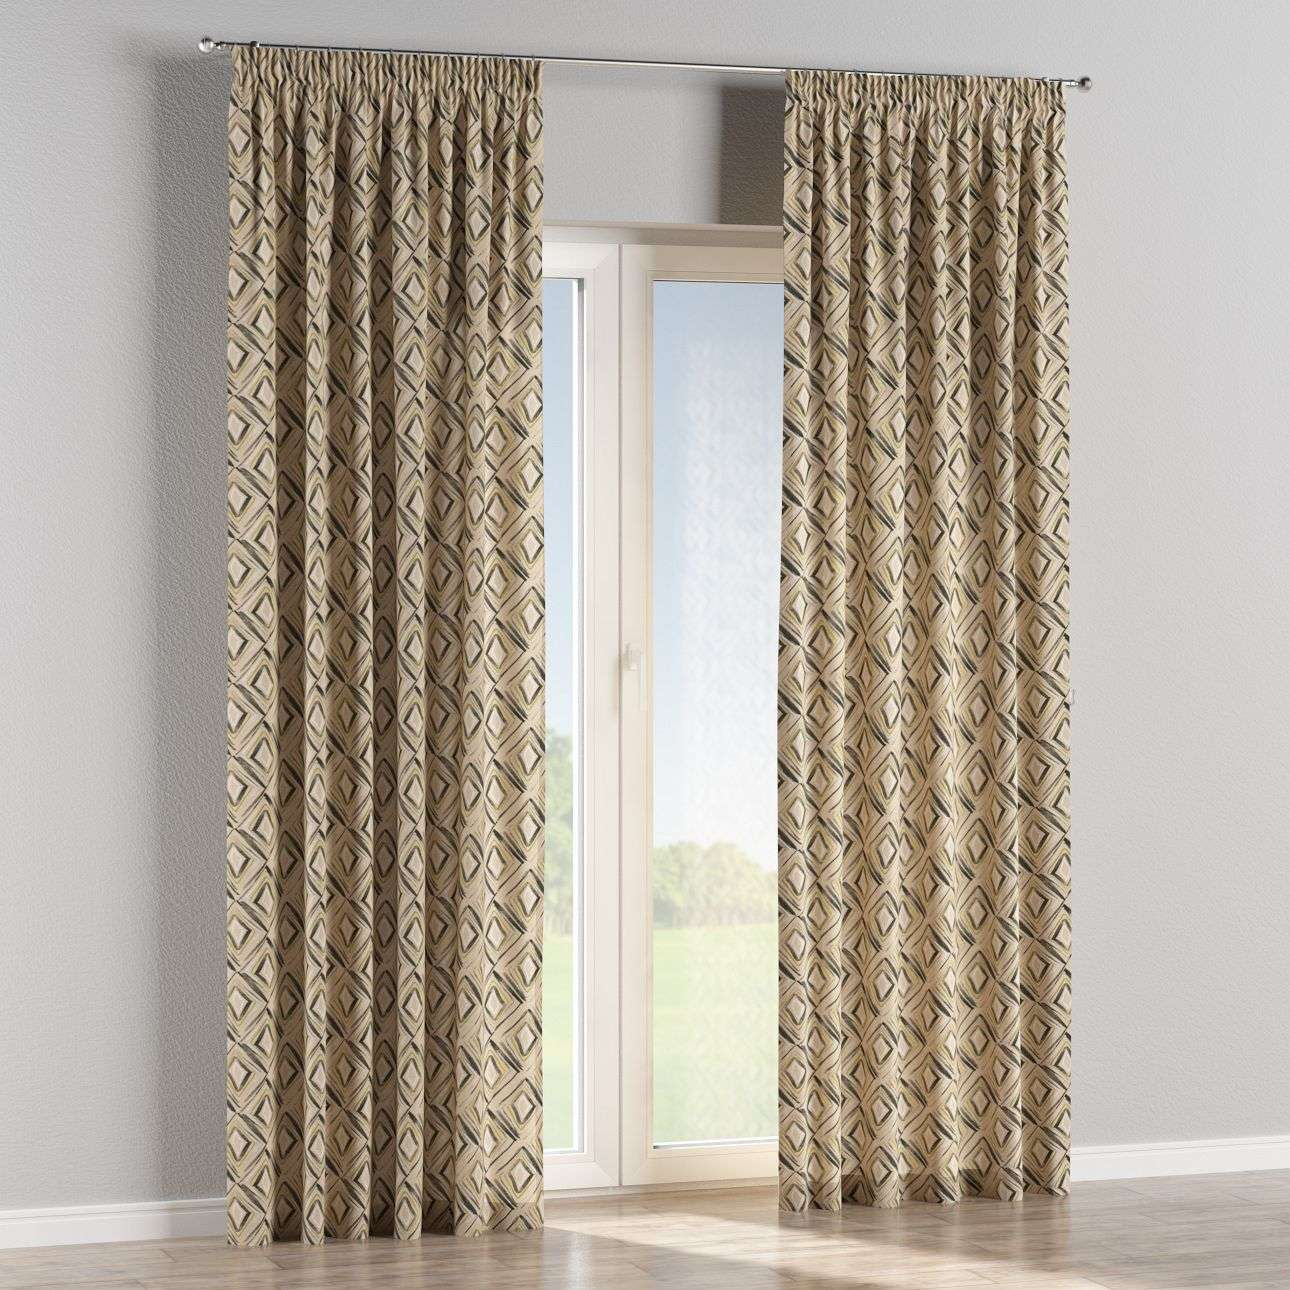 Pencil pleat curtains 130 x 260 cm (51 x 102 inch) in collection Londres, fabric: 140-46